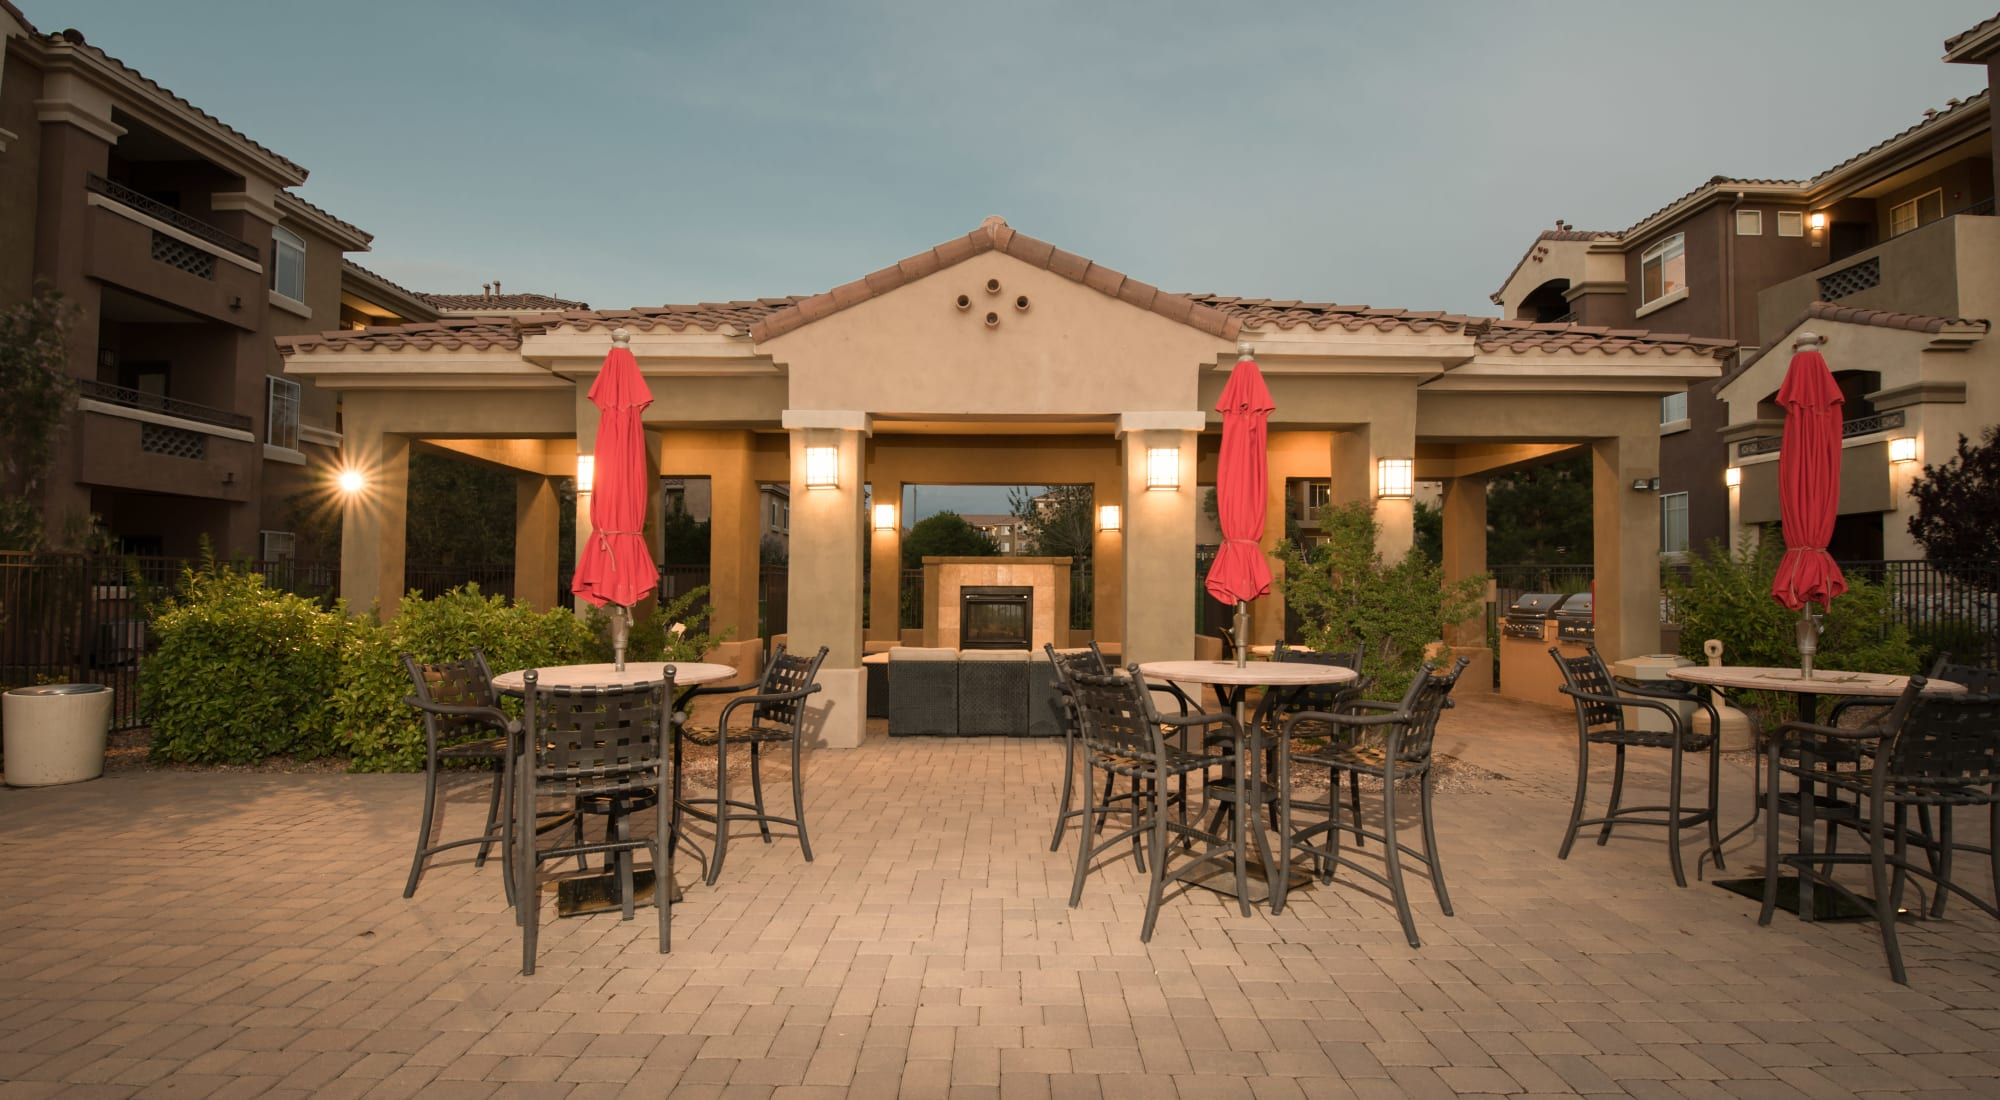 Schedule your tour of Broadstone Towne Center in Albuquerque, New Mexico